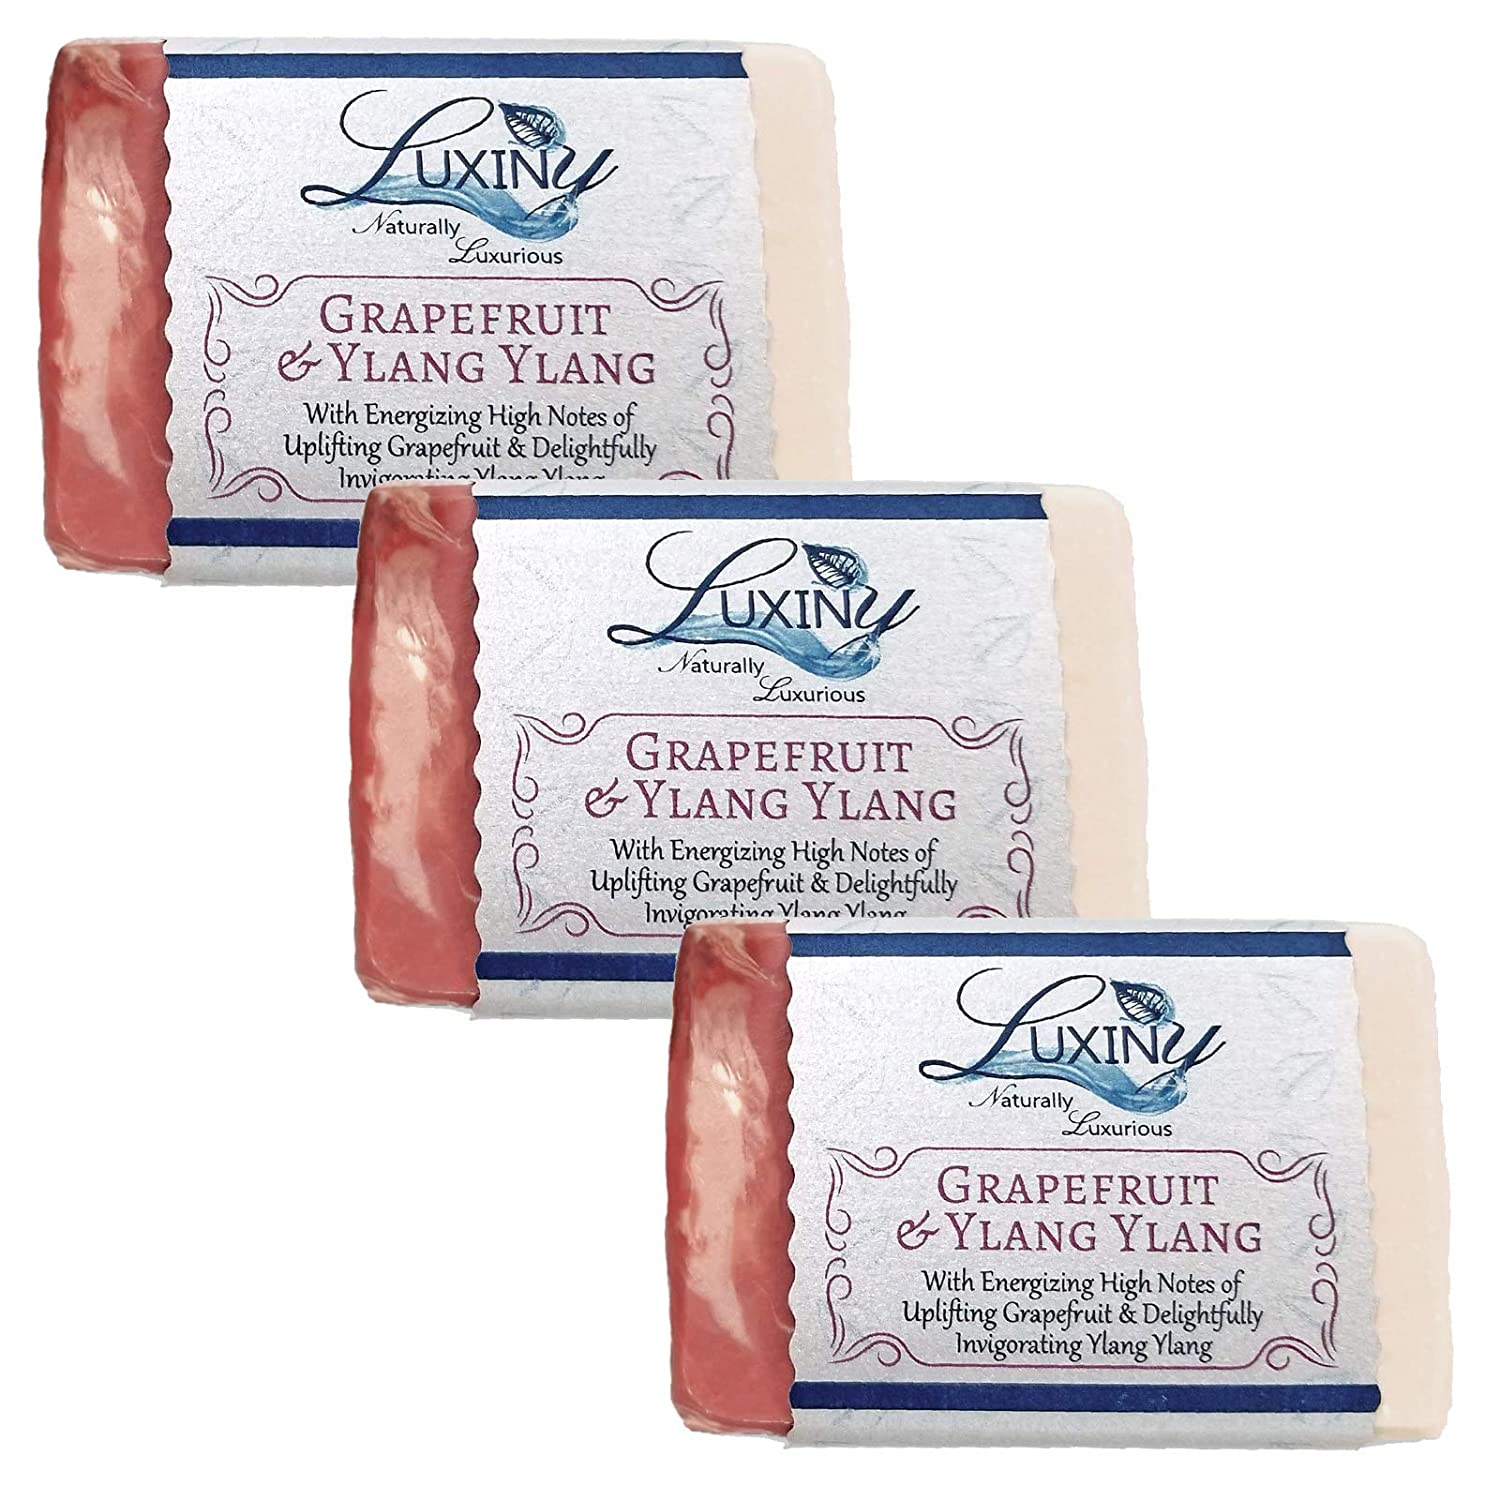 Natural Soap Bar, Luxiny Grapefruit & Ylang Ylang Handmade Body Soap and Bath Soap Bar, Palm Oil Free Vegan Castile Soap with Essential Oil & Rose Clay Exfoliator Gentle on Sensitive Skin (3 Pack)